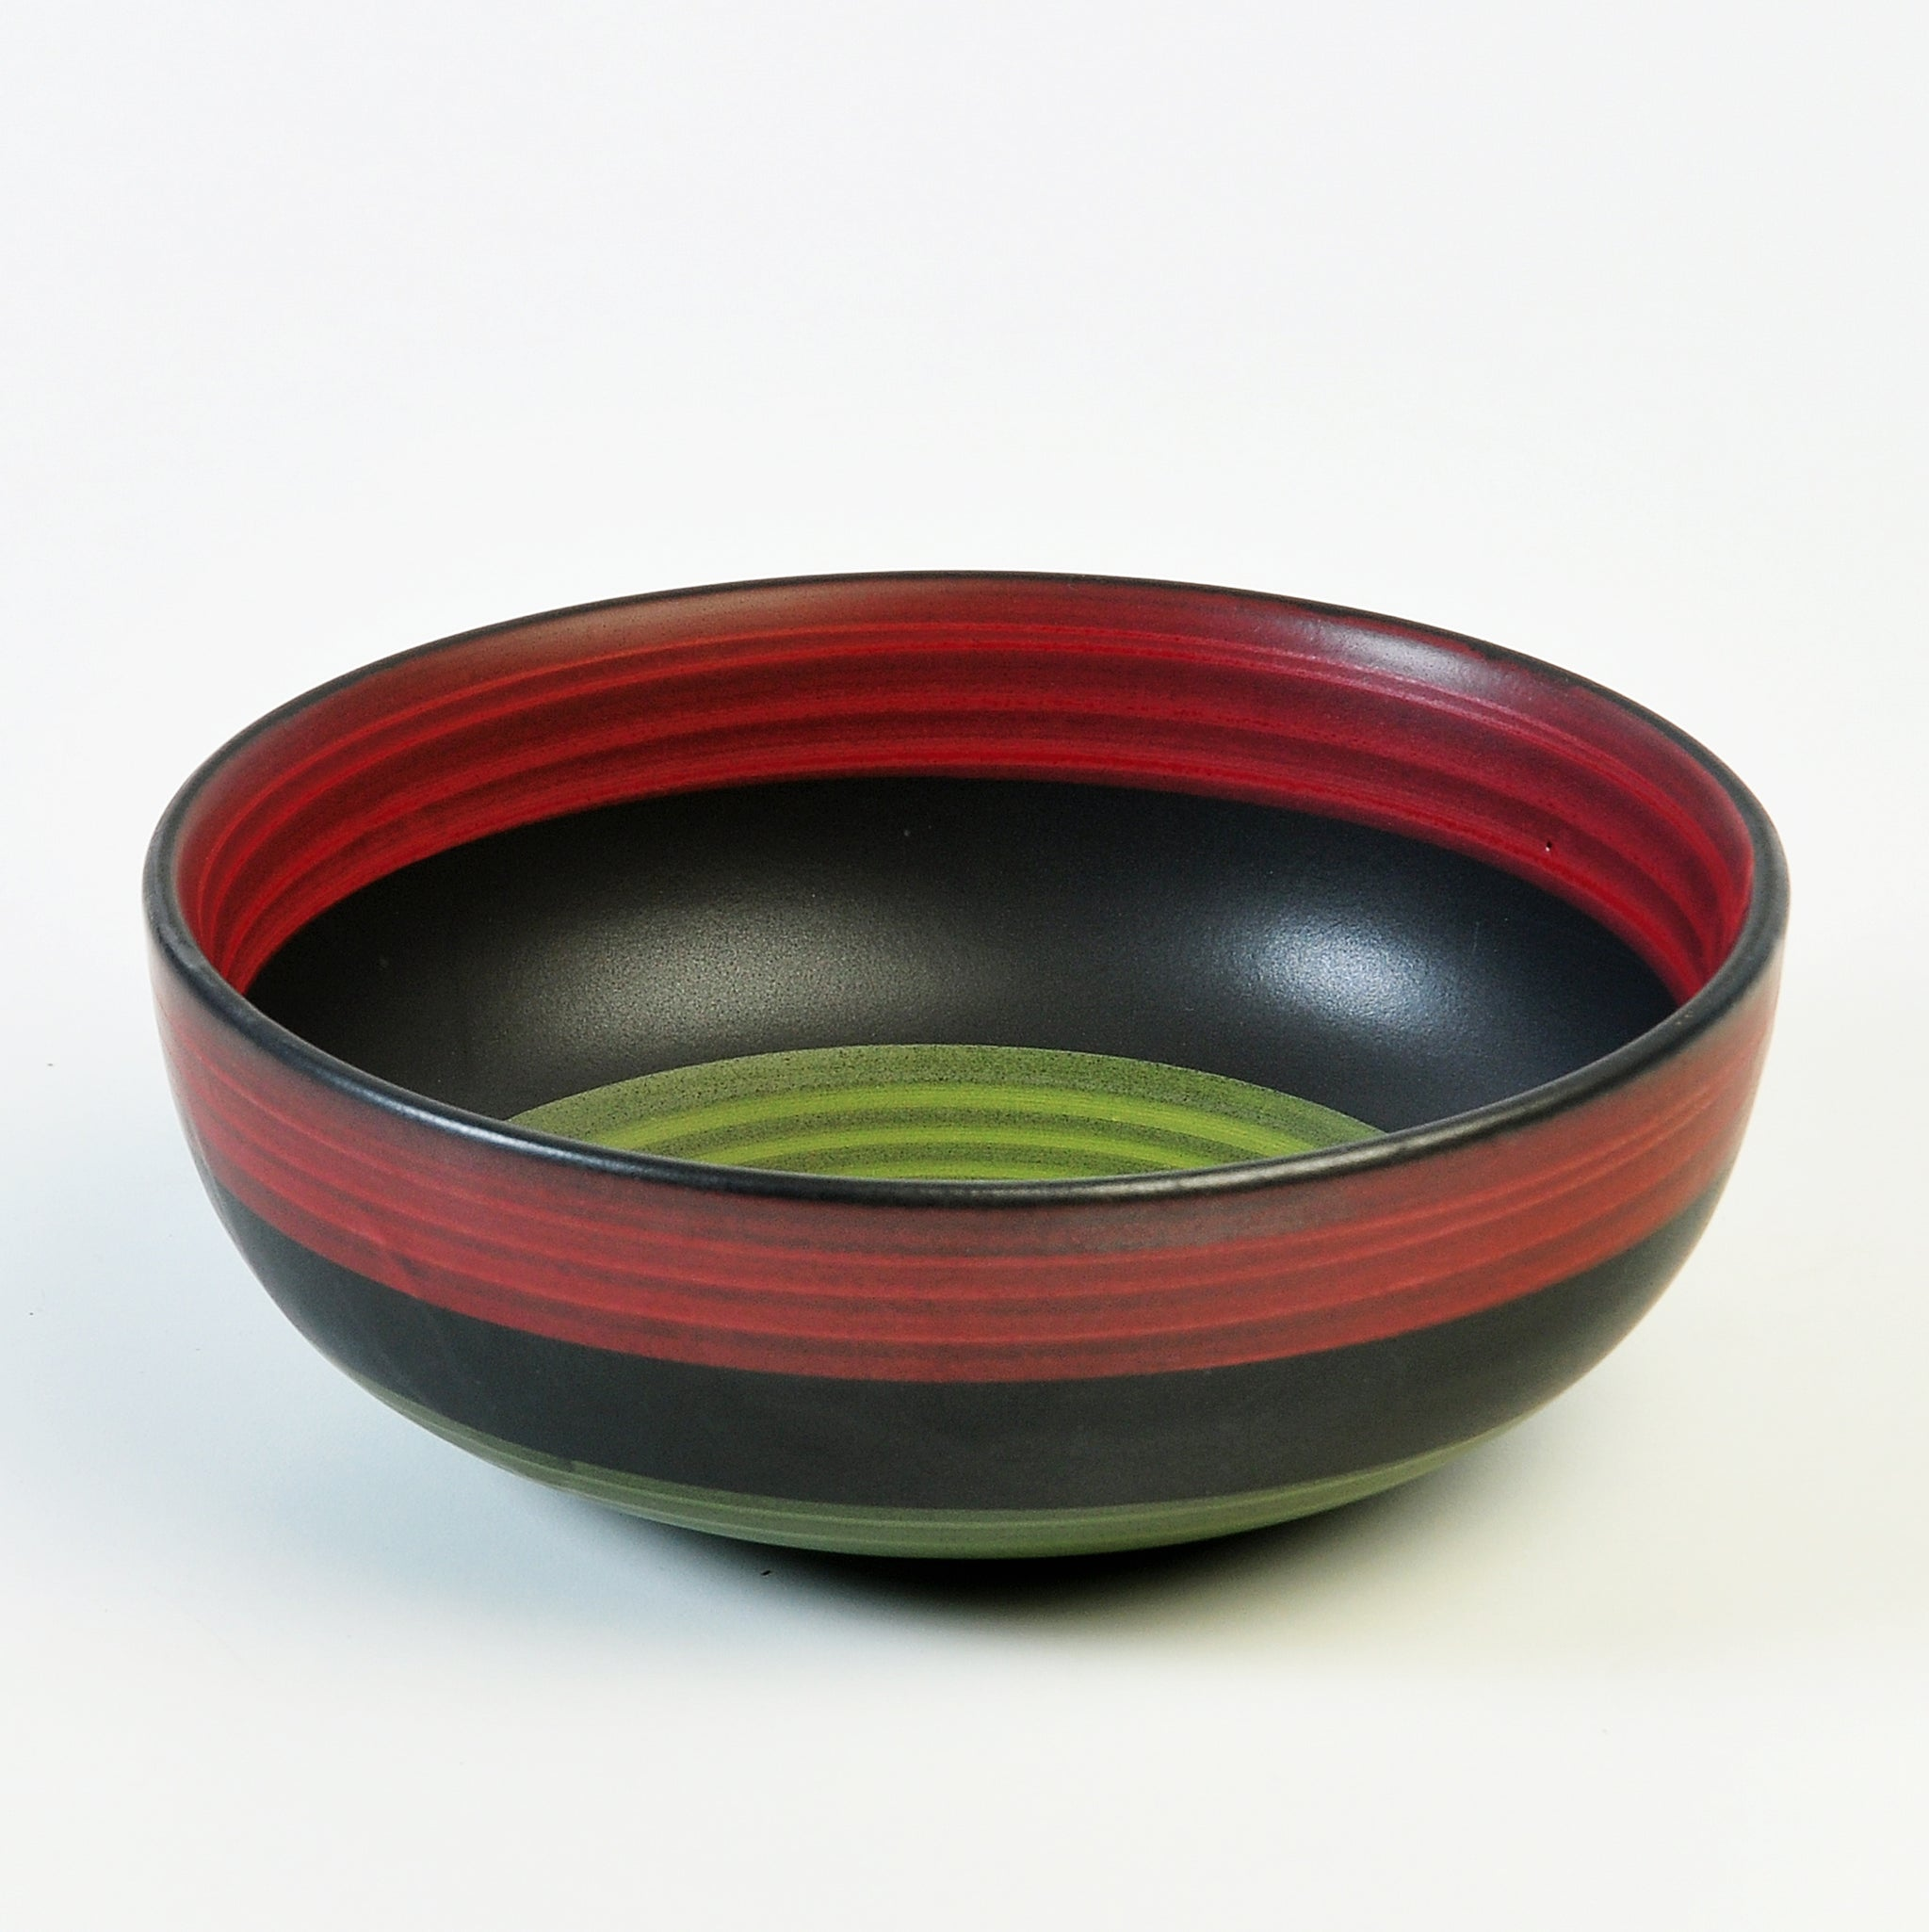 prismatic-snack-bowl-pink-green-black-dec5315